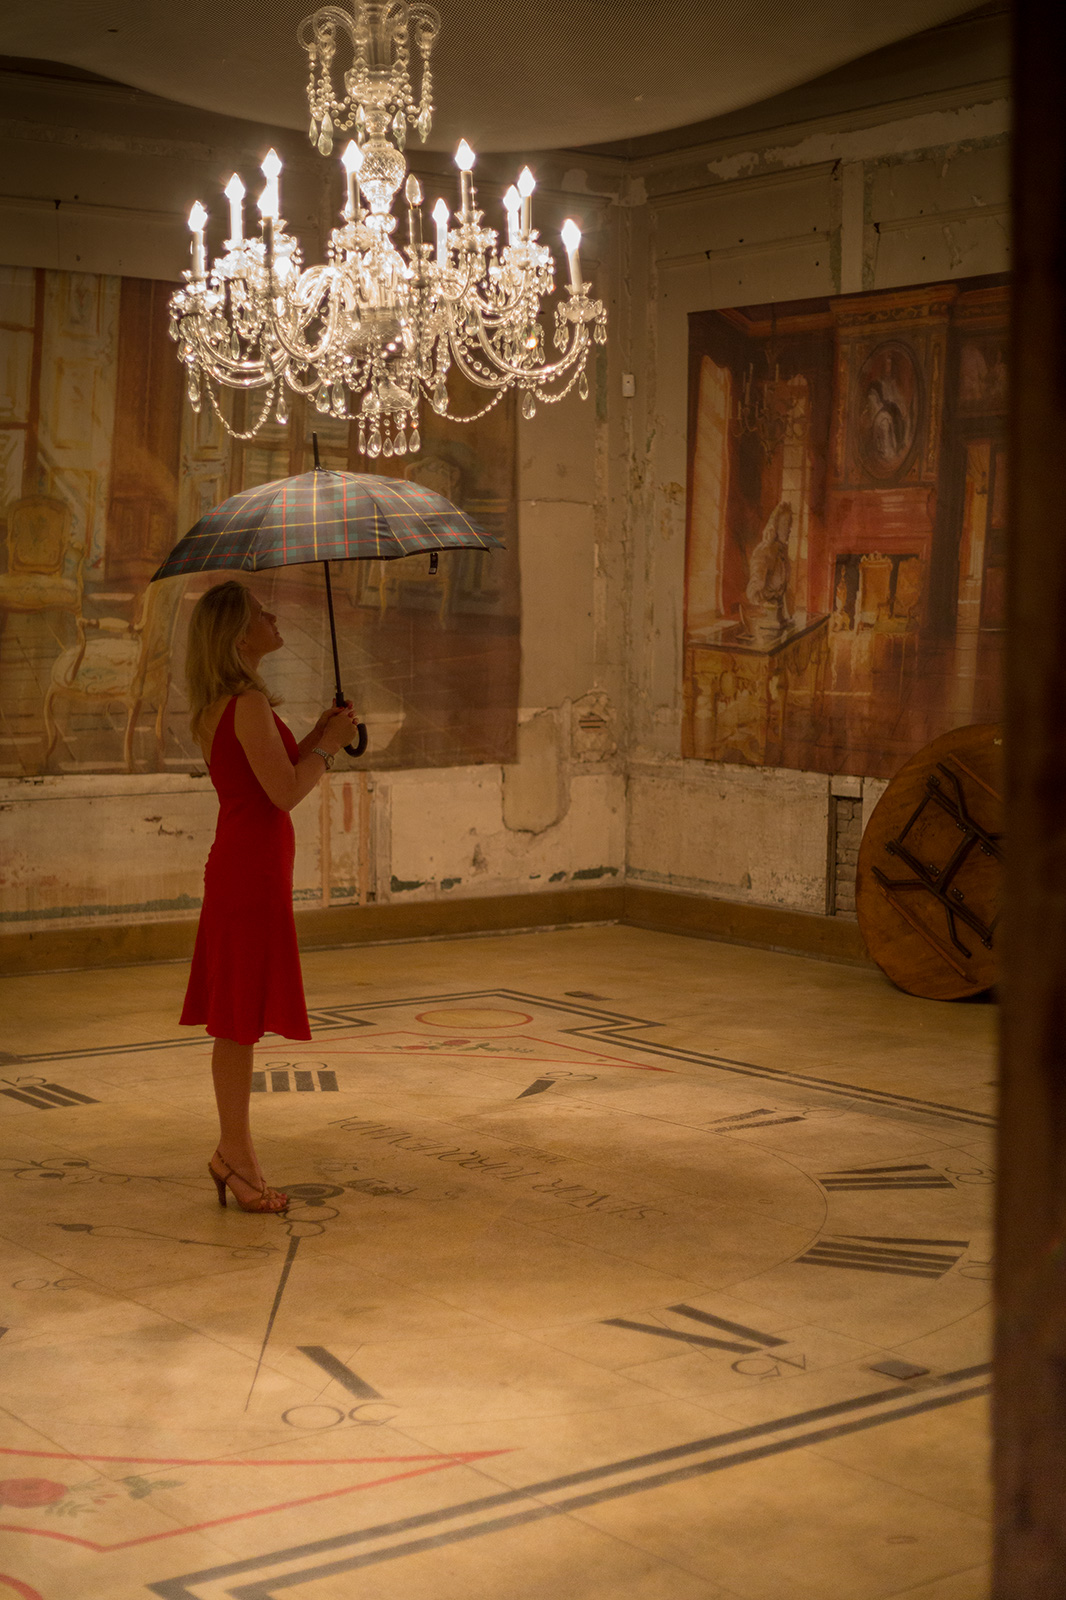 Woman with umbrella under chandelier